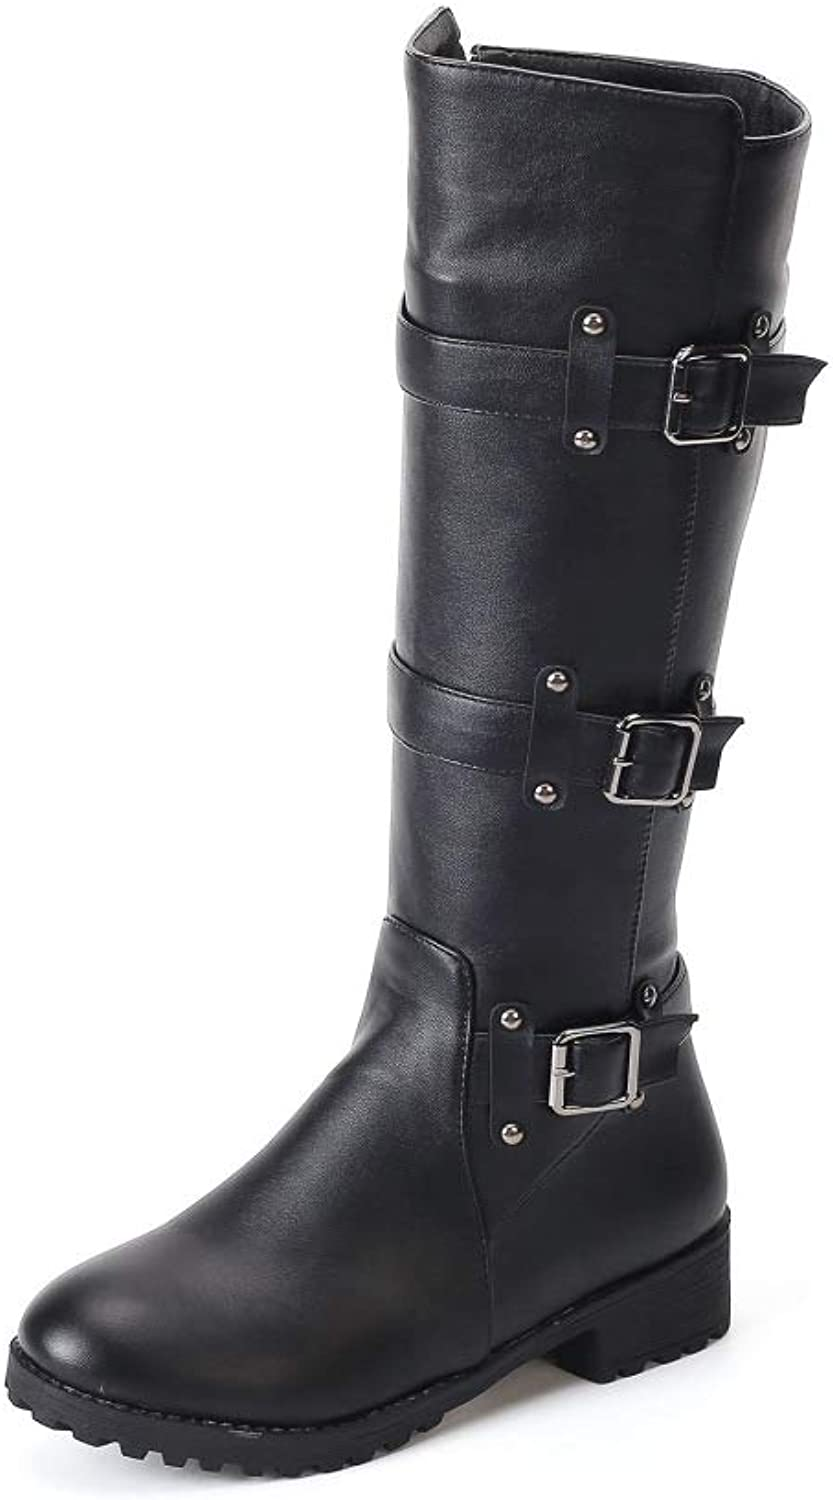 Boots for Women, Round Head Large Size Flat Belt Buckle Fashion Boots, British Wind Belt Buckle Boots Snow Boots